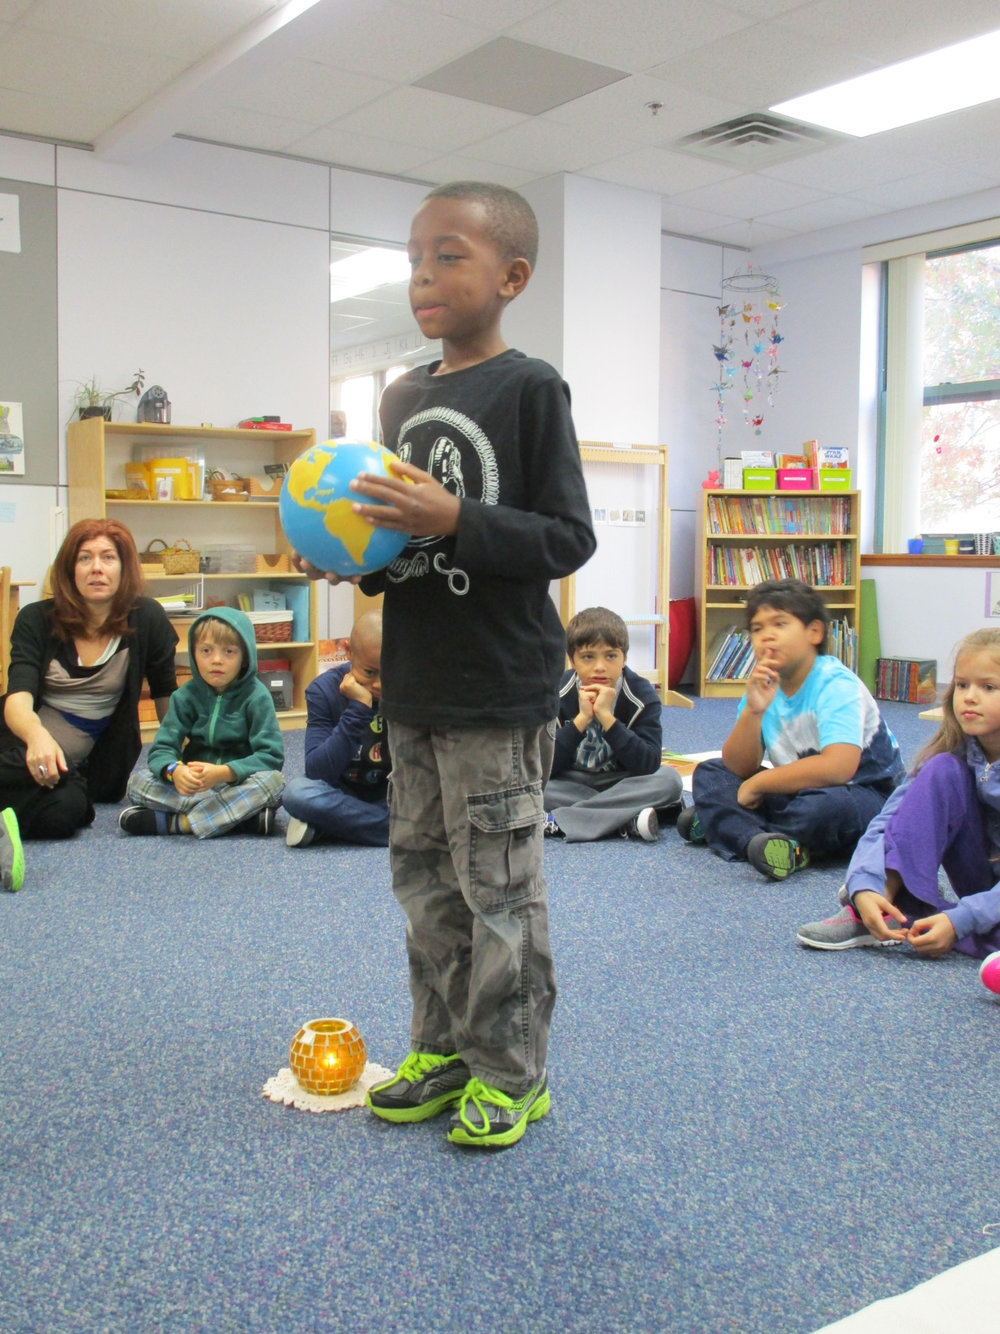 A first grade Lower Elementary North student celebrated his seventh birthday. His mom came to join in the celebration.  They shared about each year of his life as he walked around a representation of the Sun, holding a globe of the Earth.